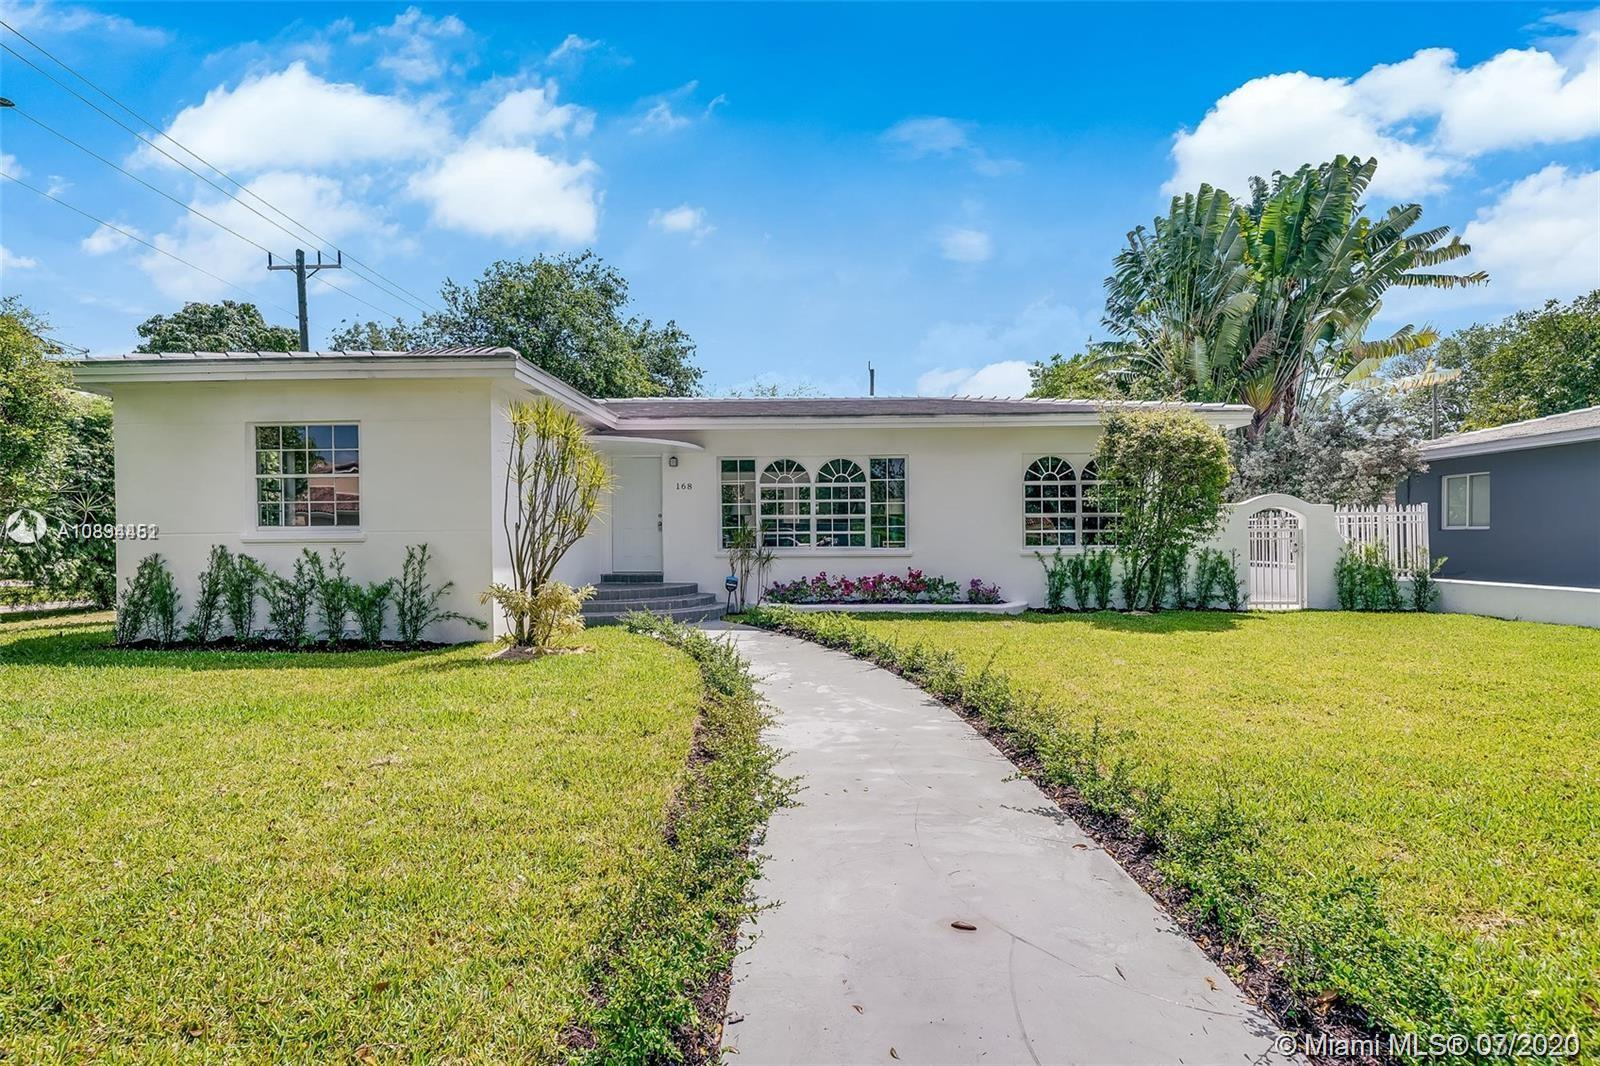 Details for 168 91st St, Miami Shores, FL 33138